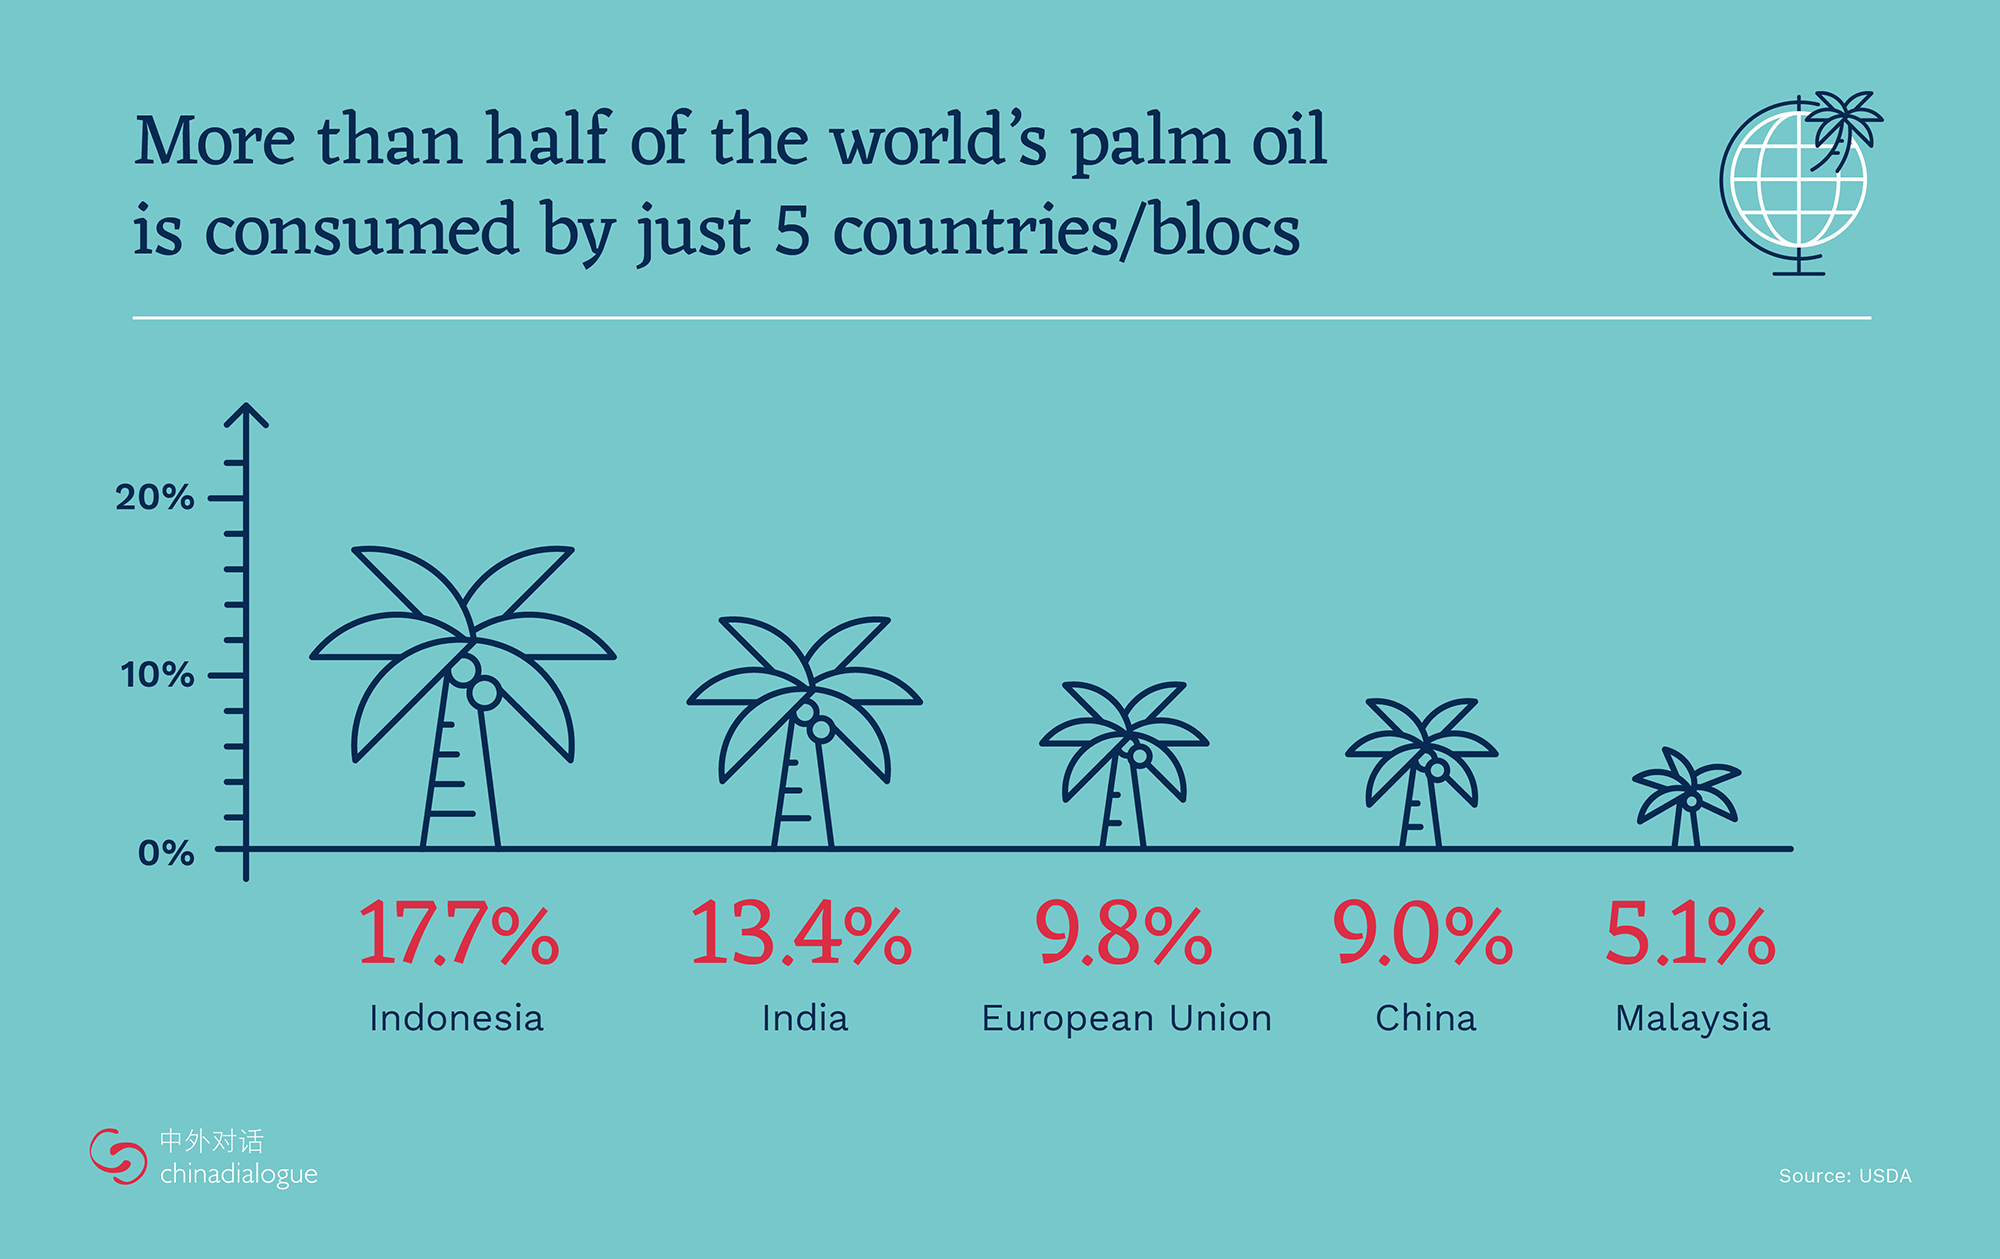 main palm oil consuming countries, top palm oil consumers